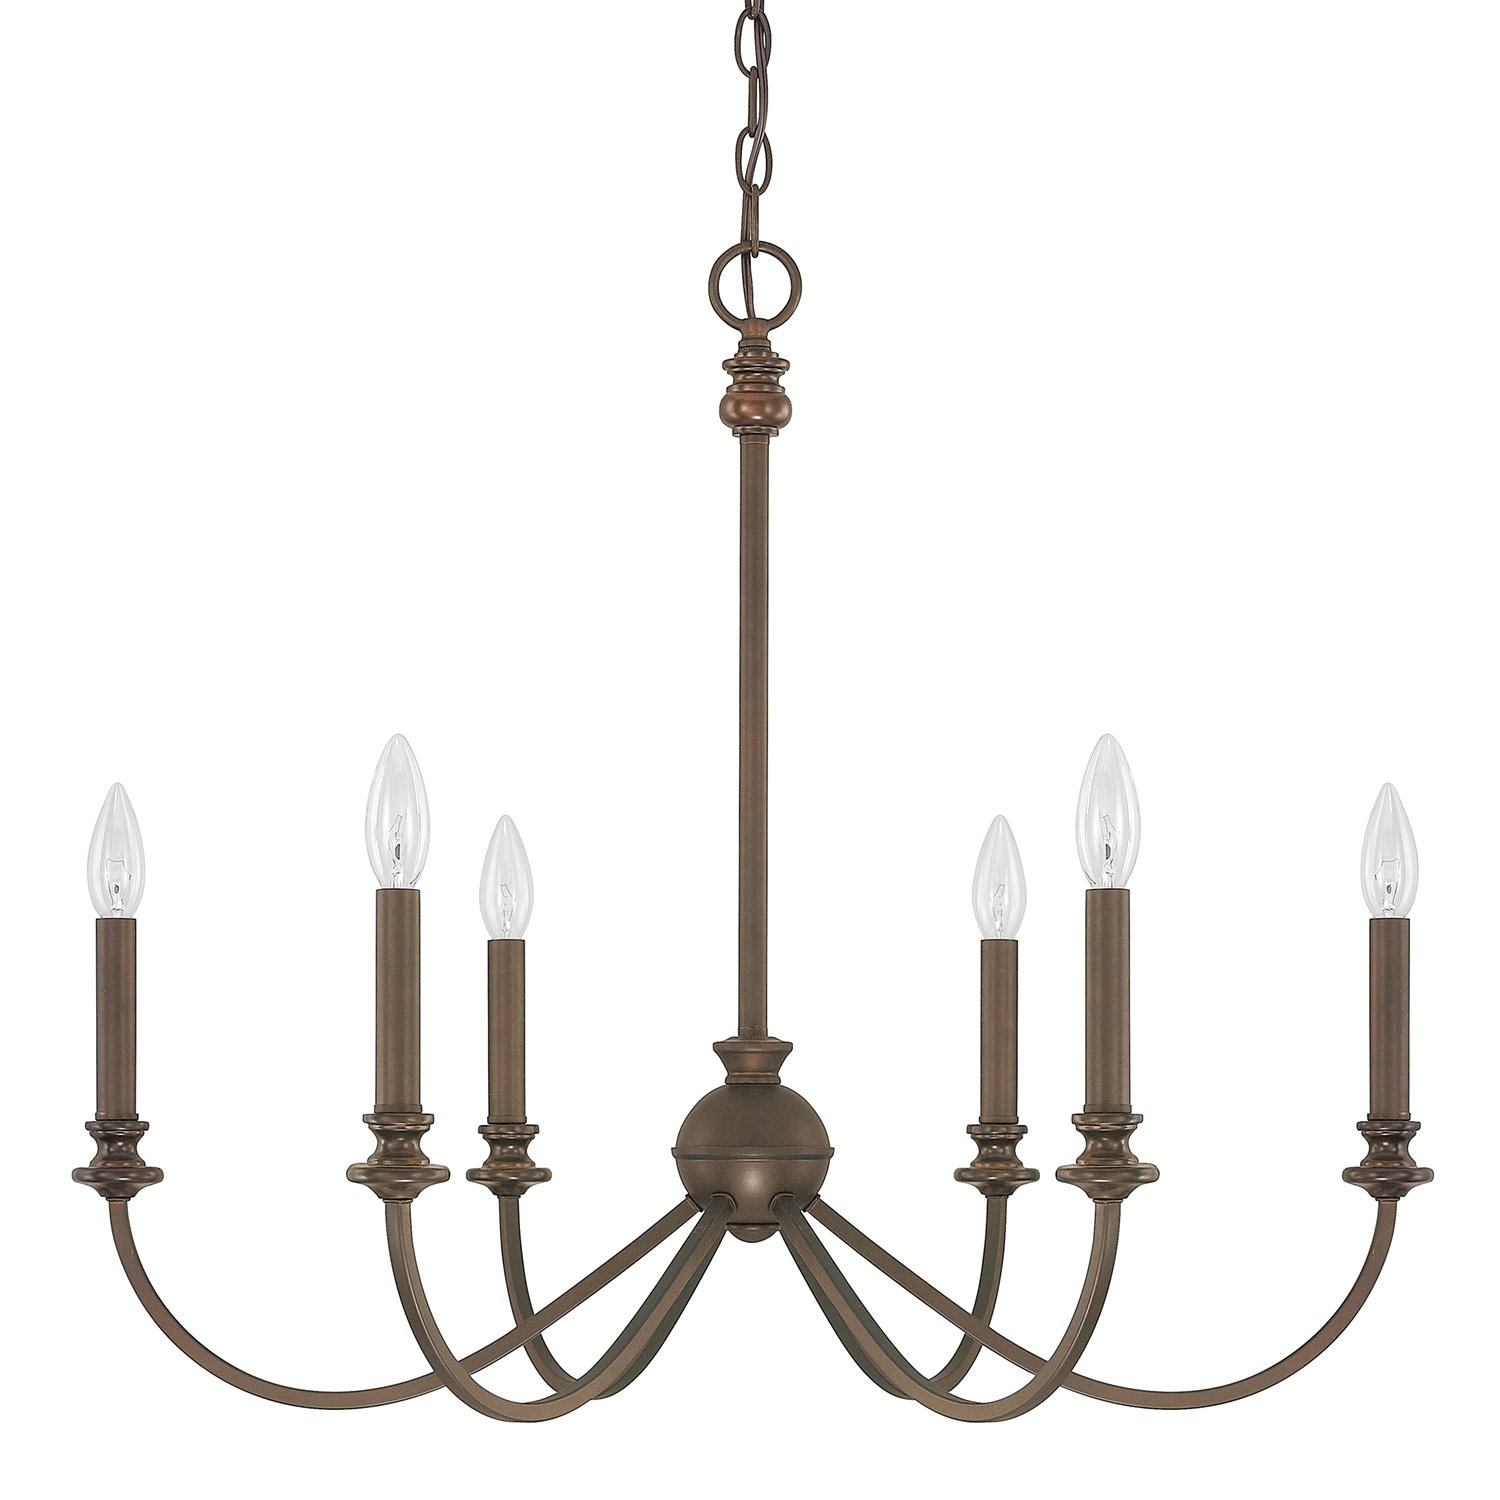 Donny Osmond Alexander 6 Light Candle Style Chandelier Reviews Within Candle Light Chandelier (Image 9 of 15)